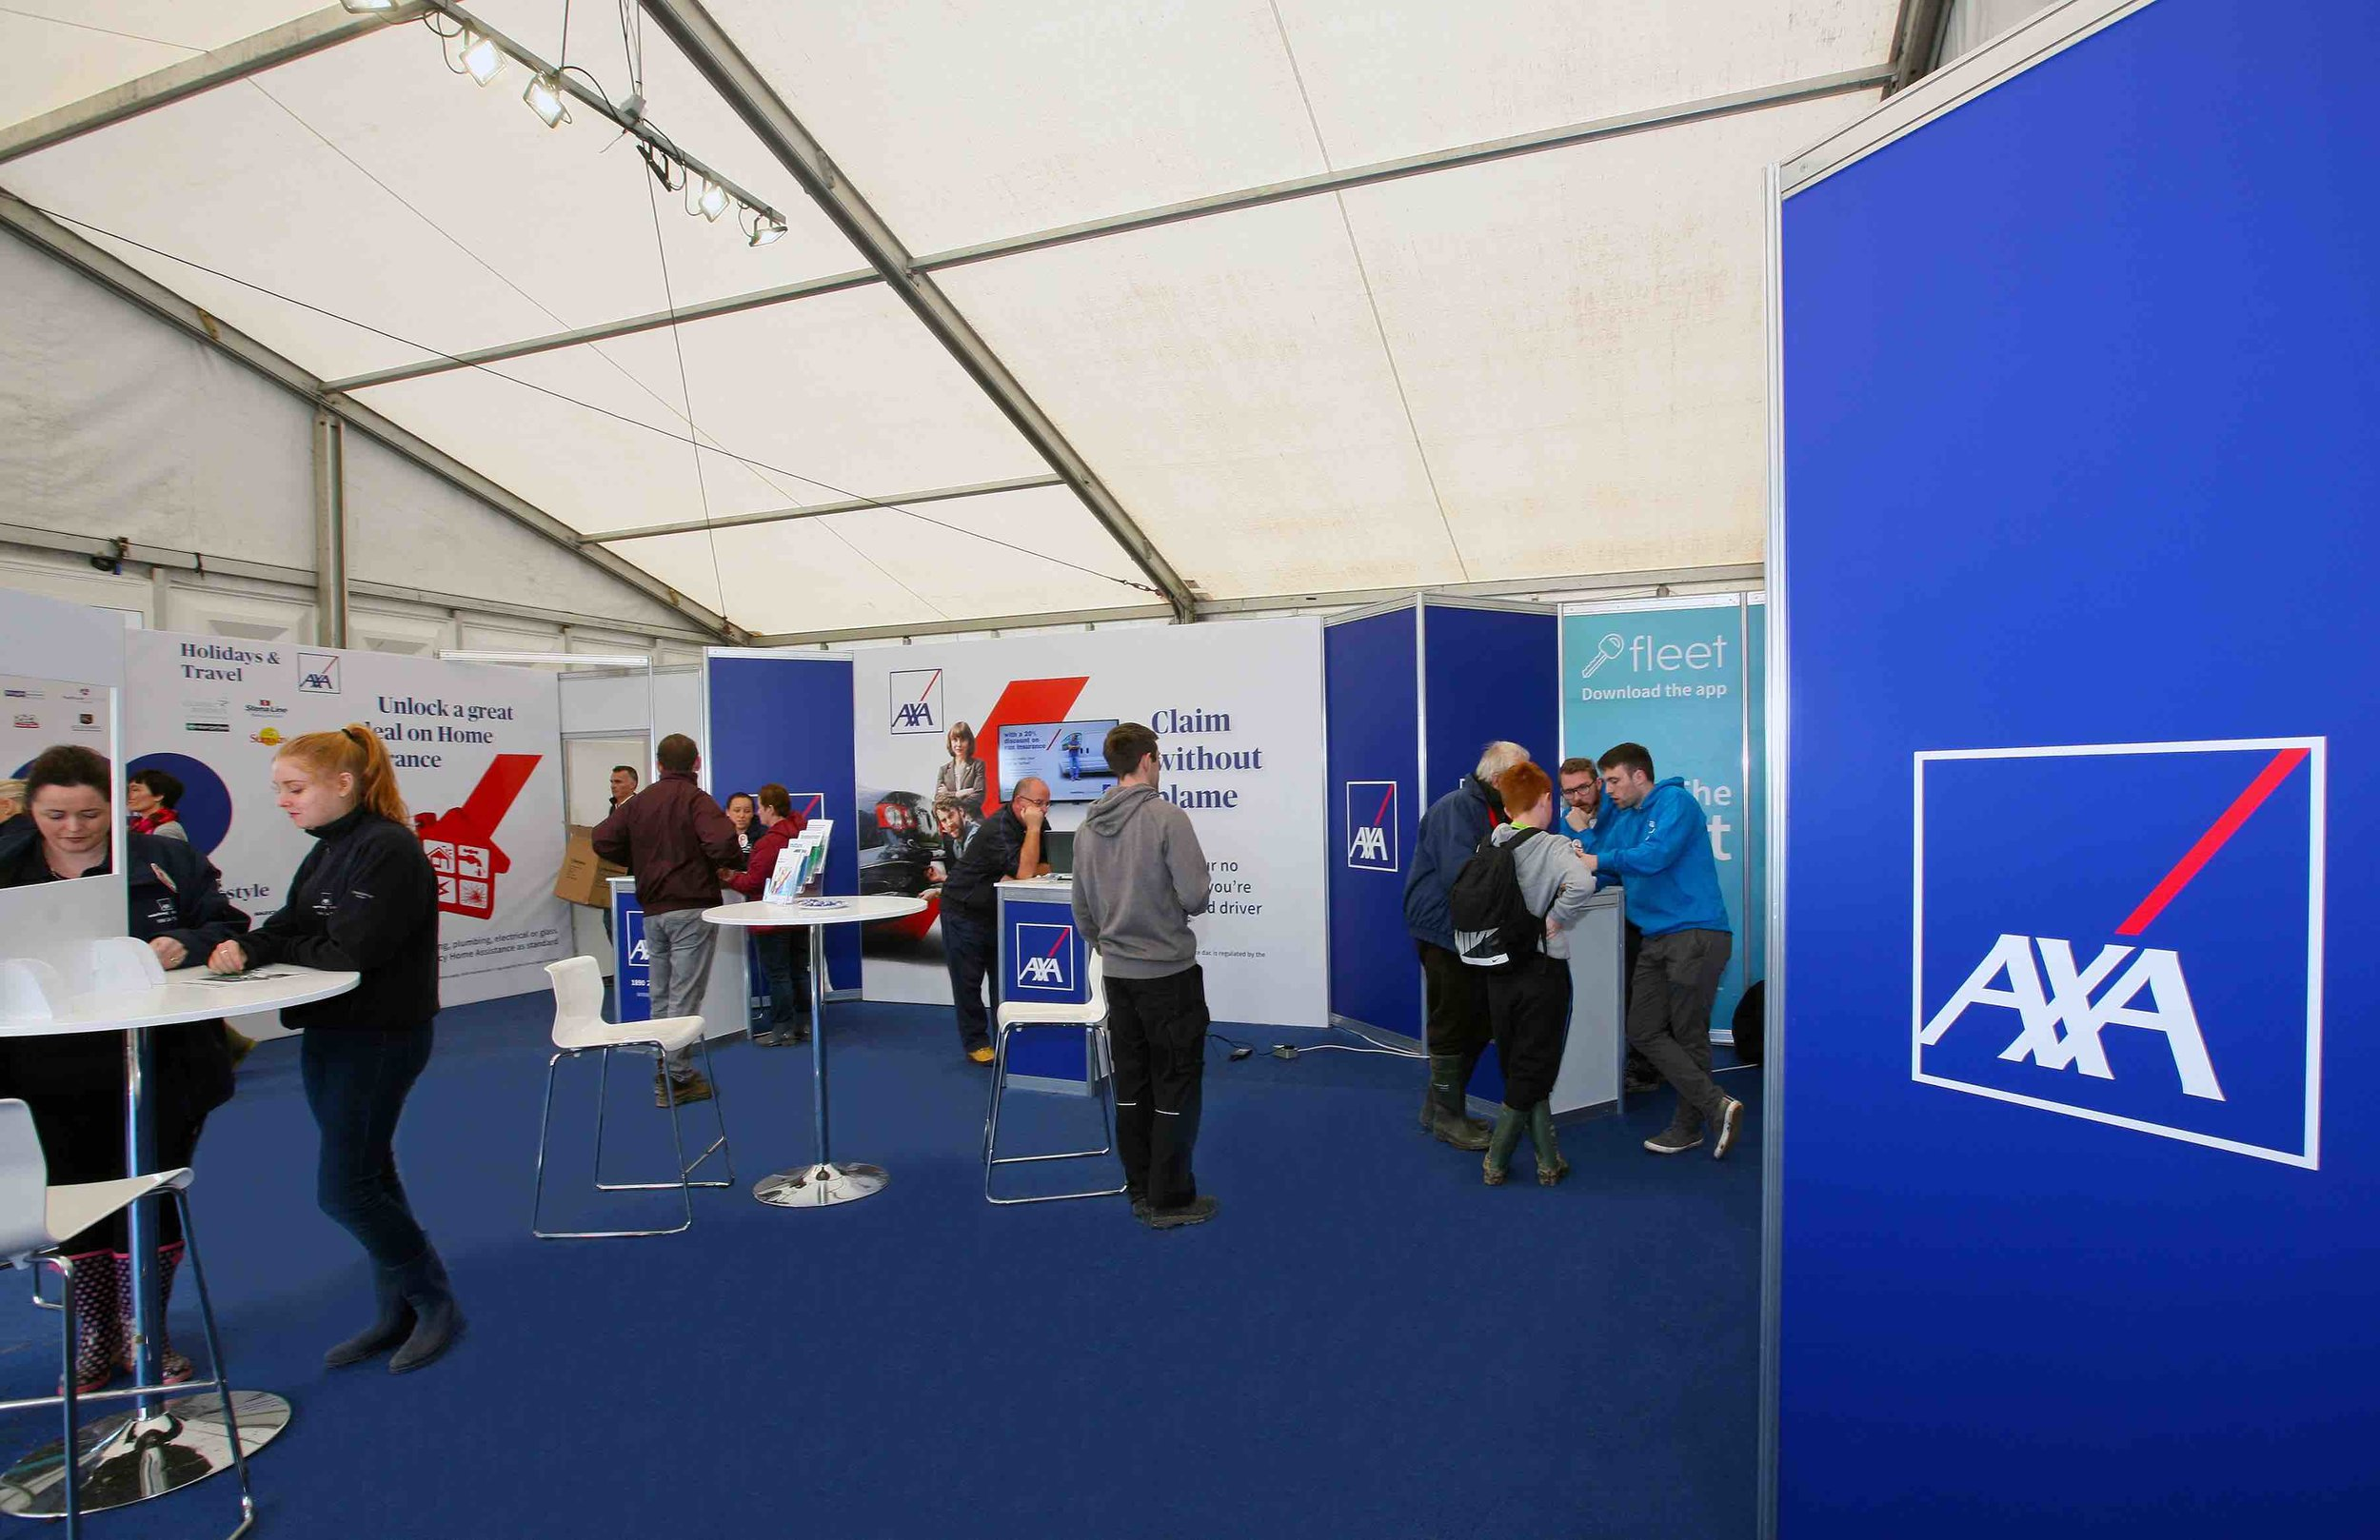 AXA Insurance Exhibition Stand at The National Ploughing Championships 2017